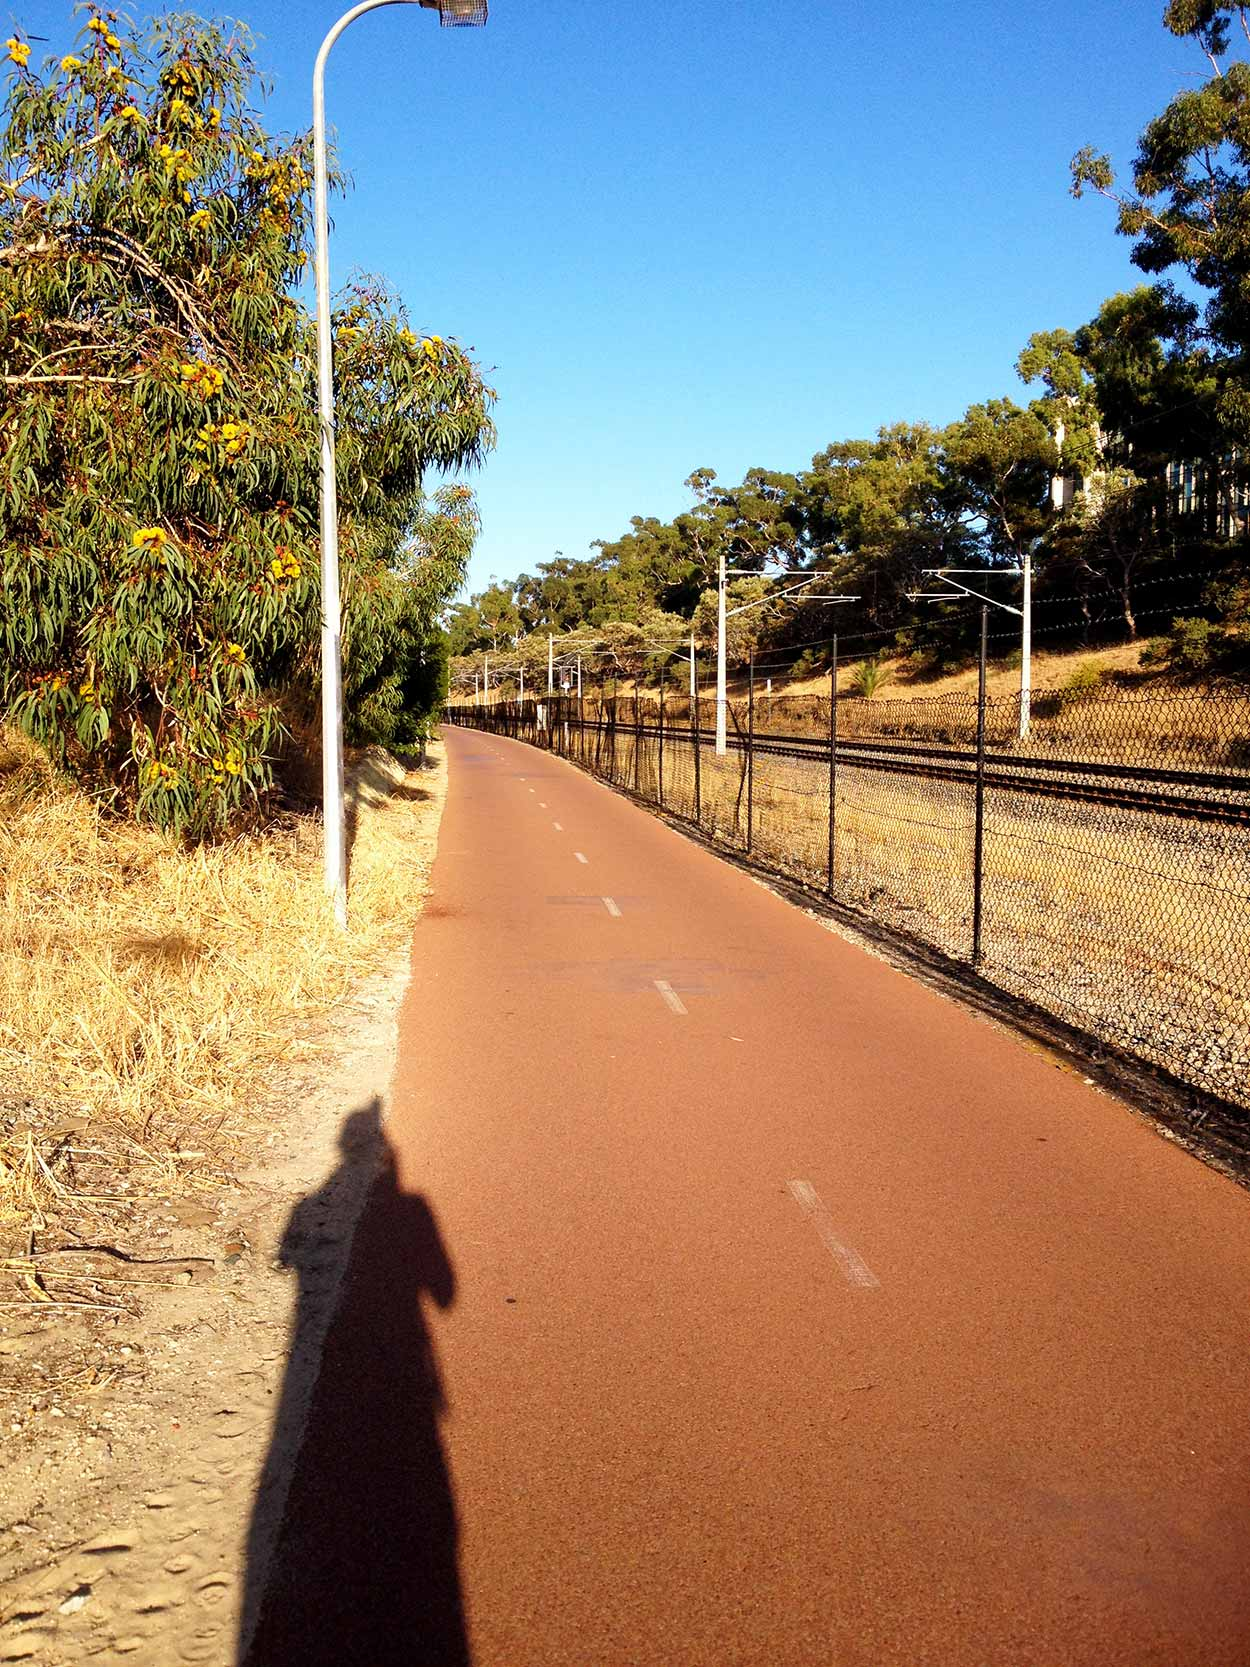 Walking along the City to the Sea path next to the train tracks in Subiaco, Perth, Western Australia